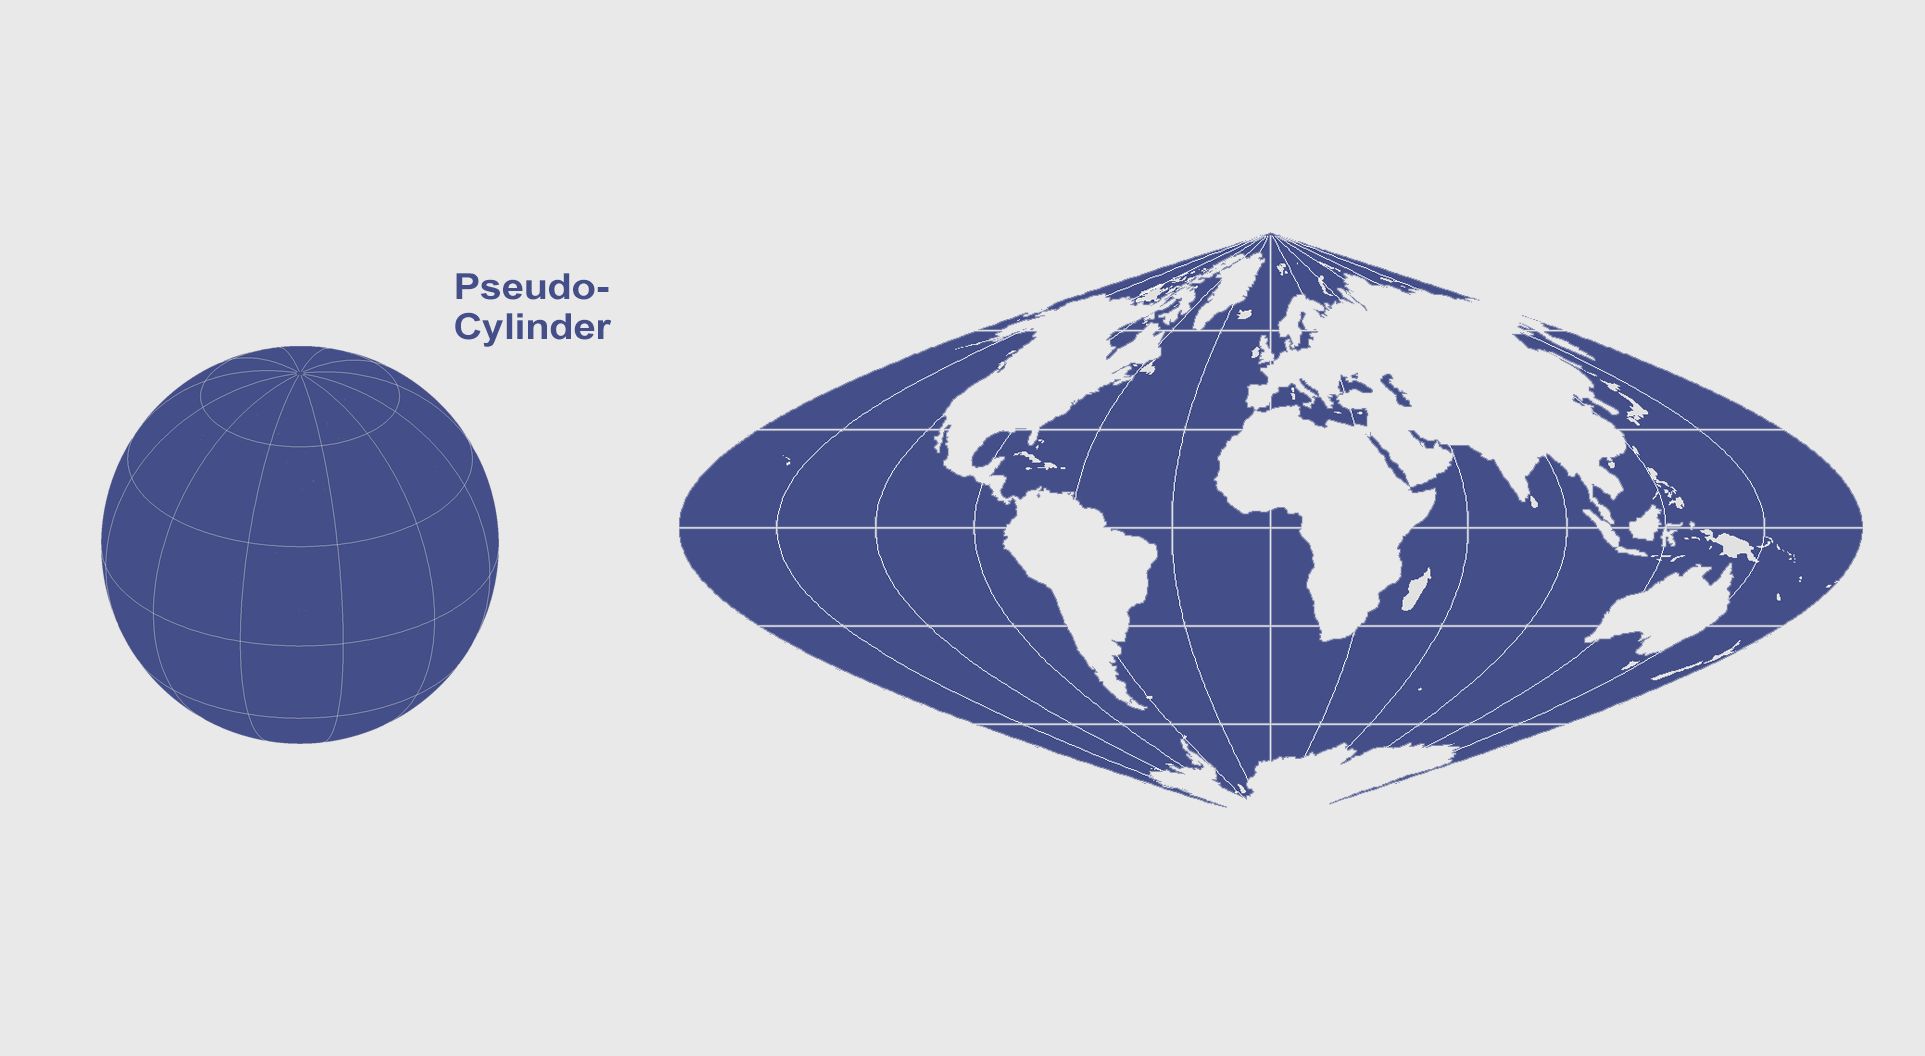 conformal mapping with Cylindrical Projection on Chap2c further mon Map Projections besides Archivo Prunus pensylvanica range map additionally Contouring as well ConformalMapDictionary 1 lnk 15.